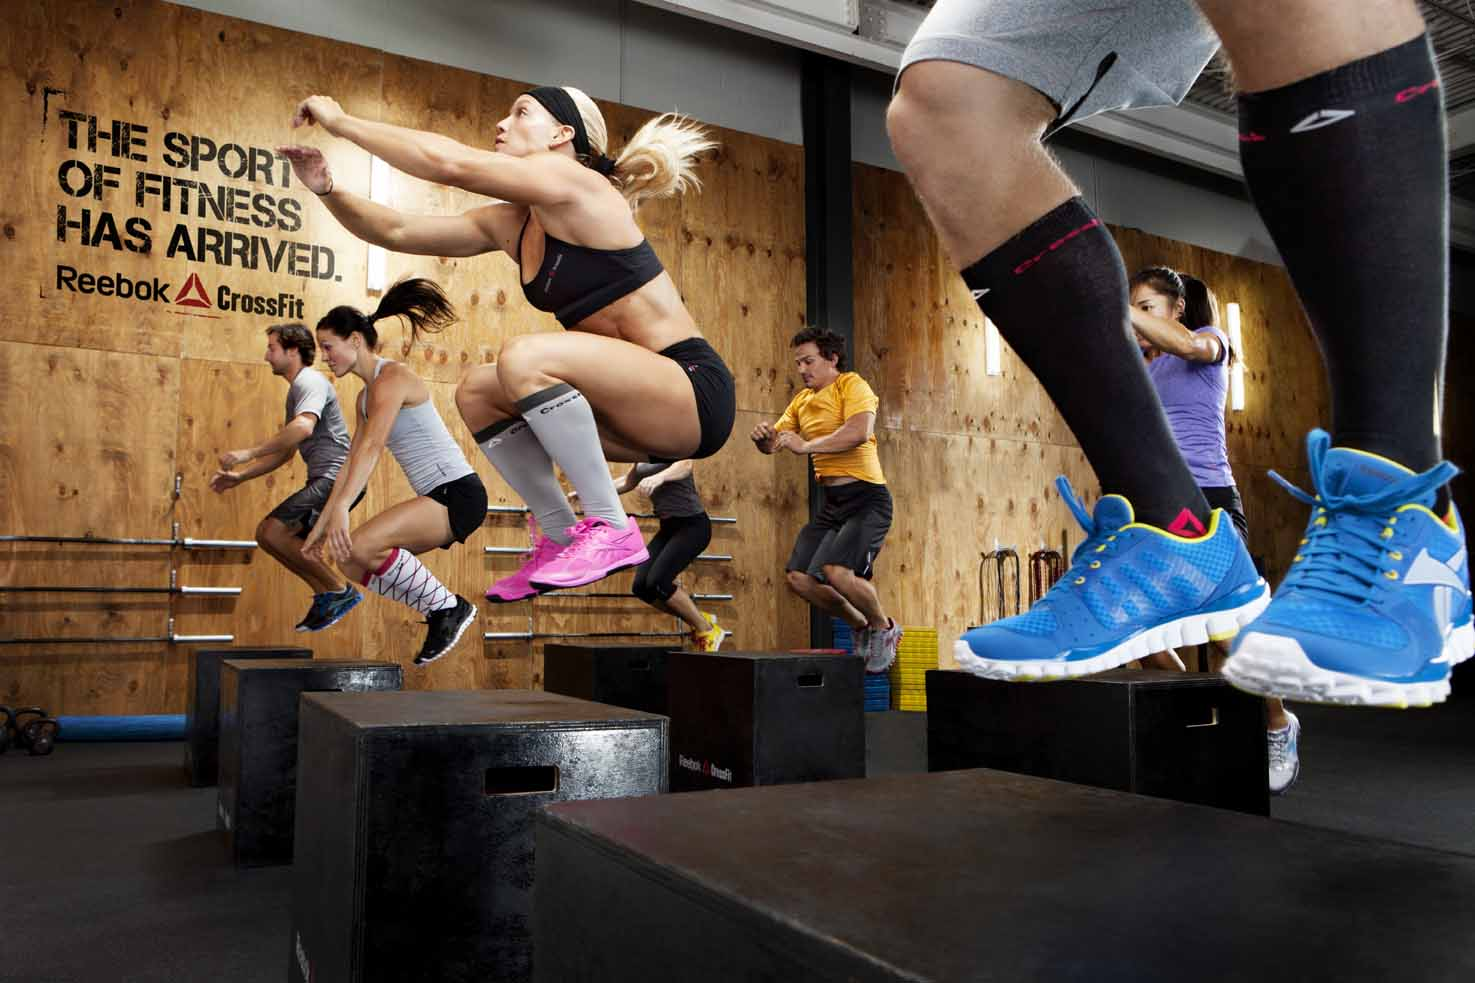 reebok and crossfit partnership